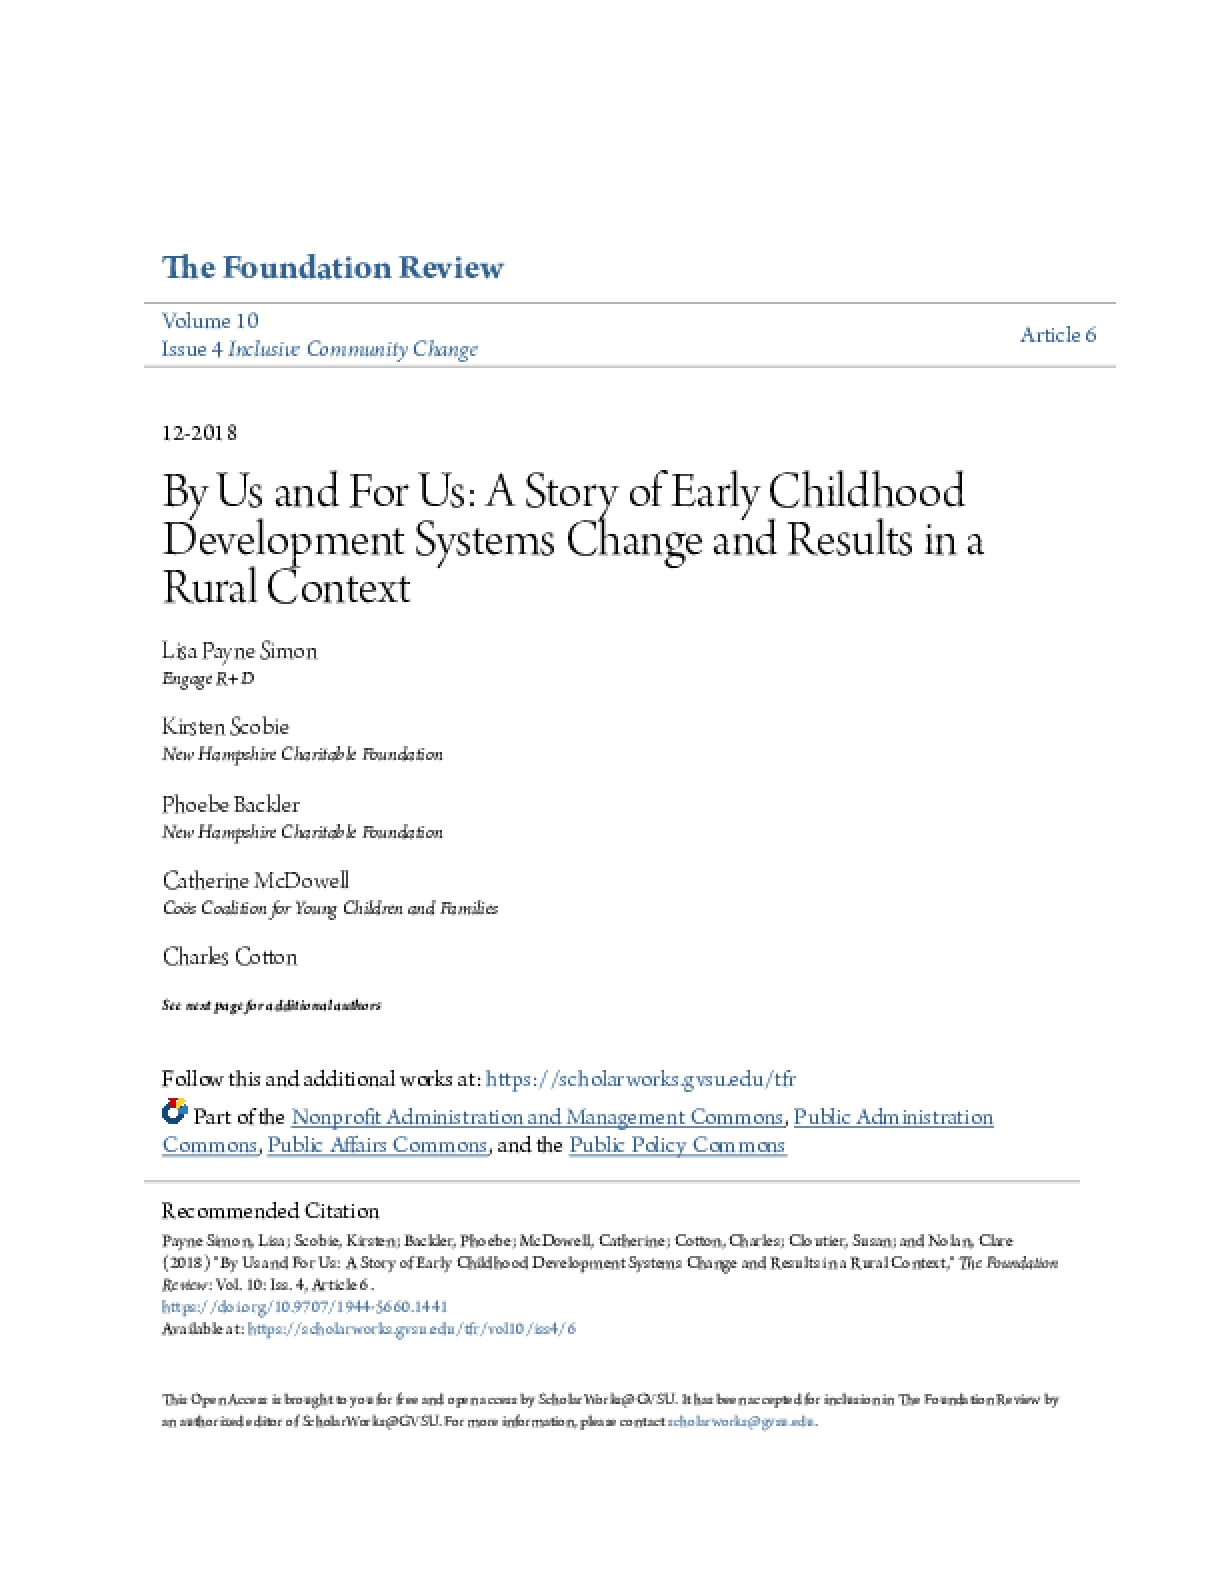 By Us and For Us: A Story of Early Childhood Development Systems Change and Results in a Rural Context